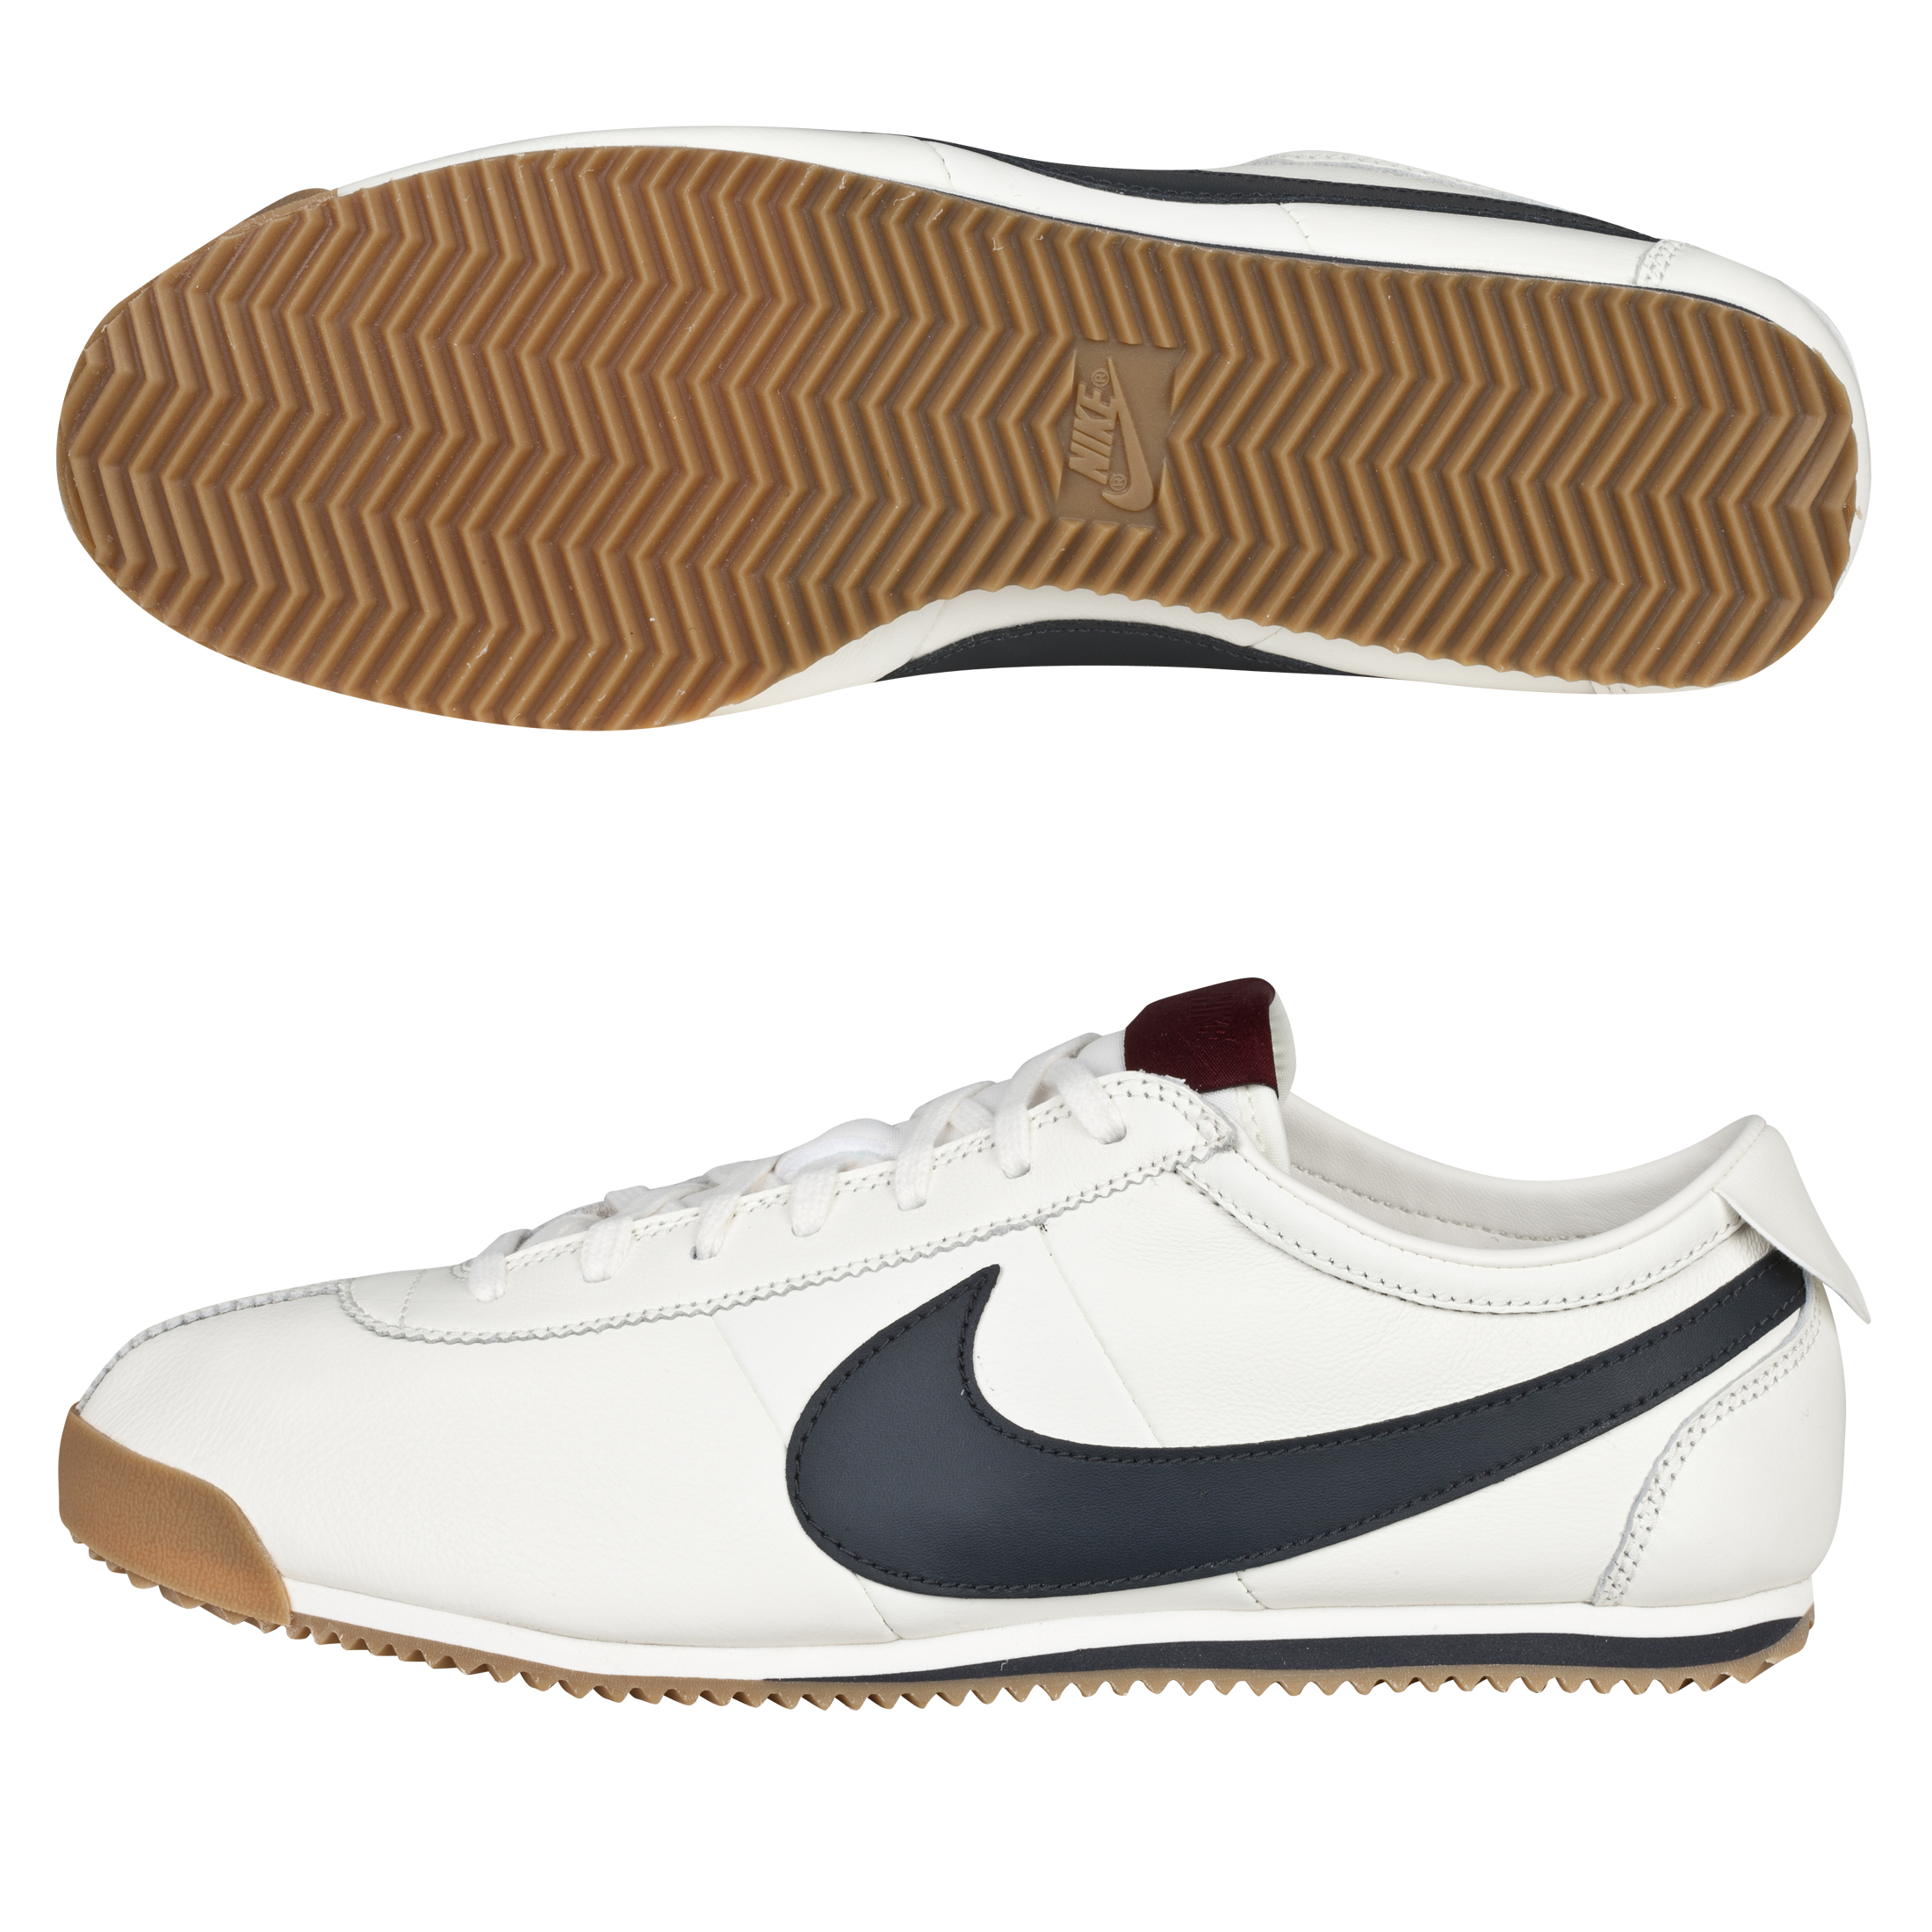 Nike Cortez Classic OG Trainers - Sail/Anthracite/Sail/Dark Team Red